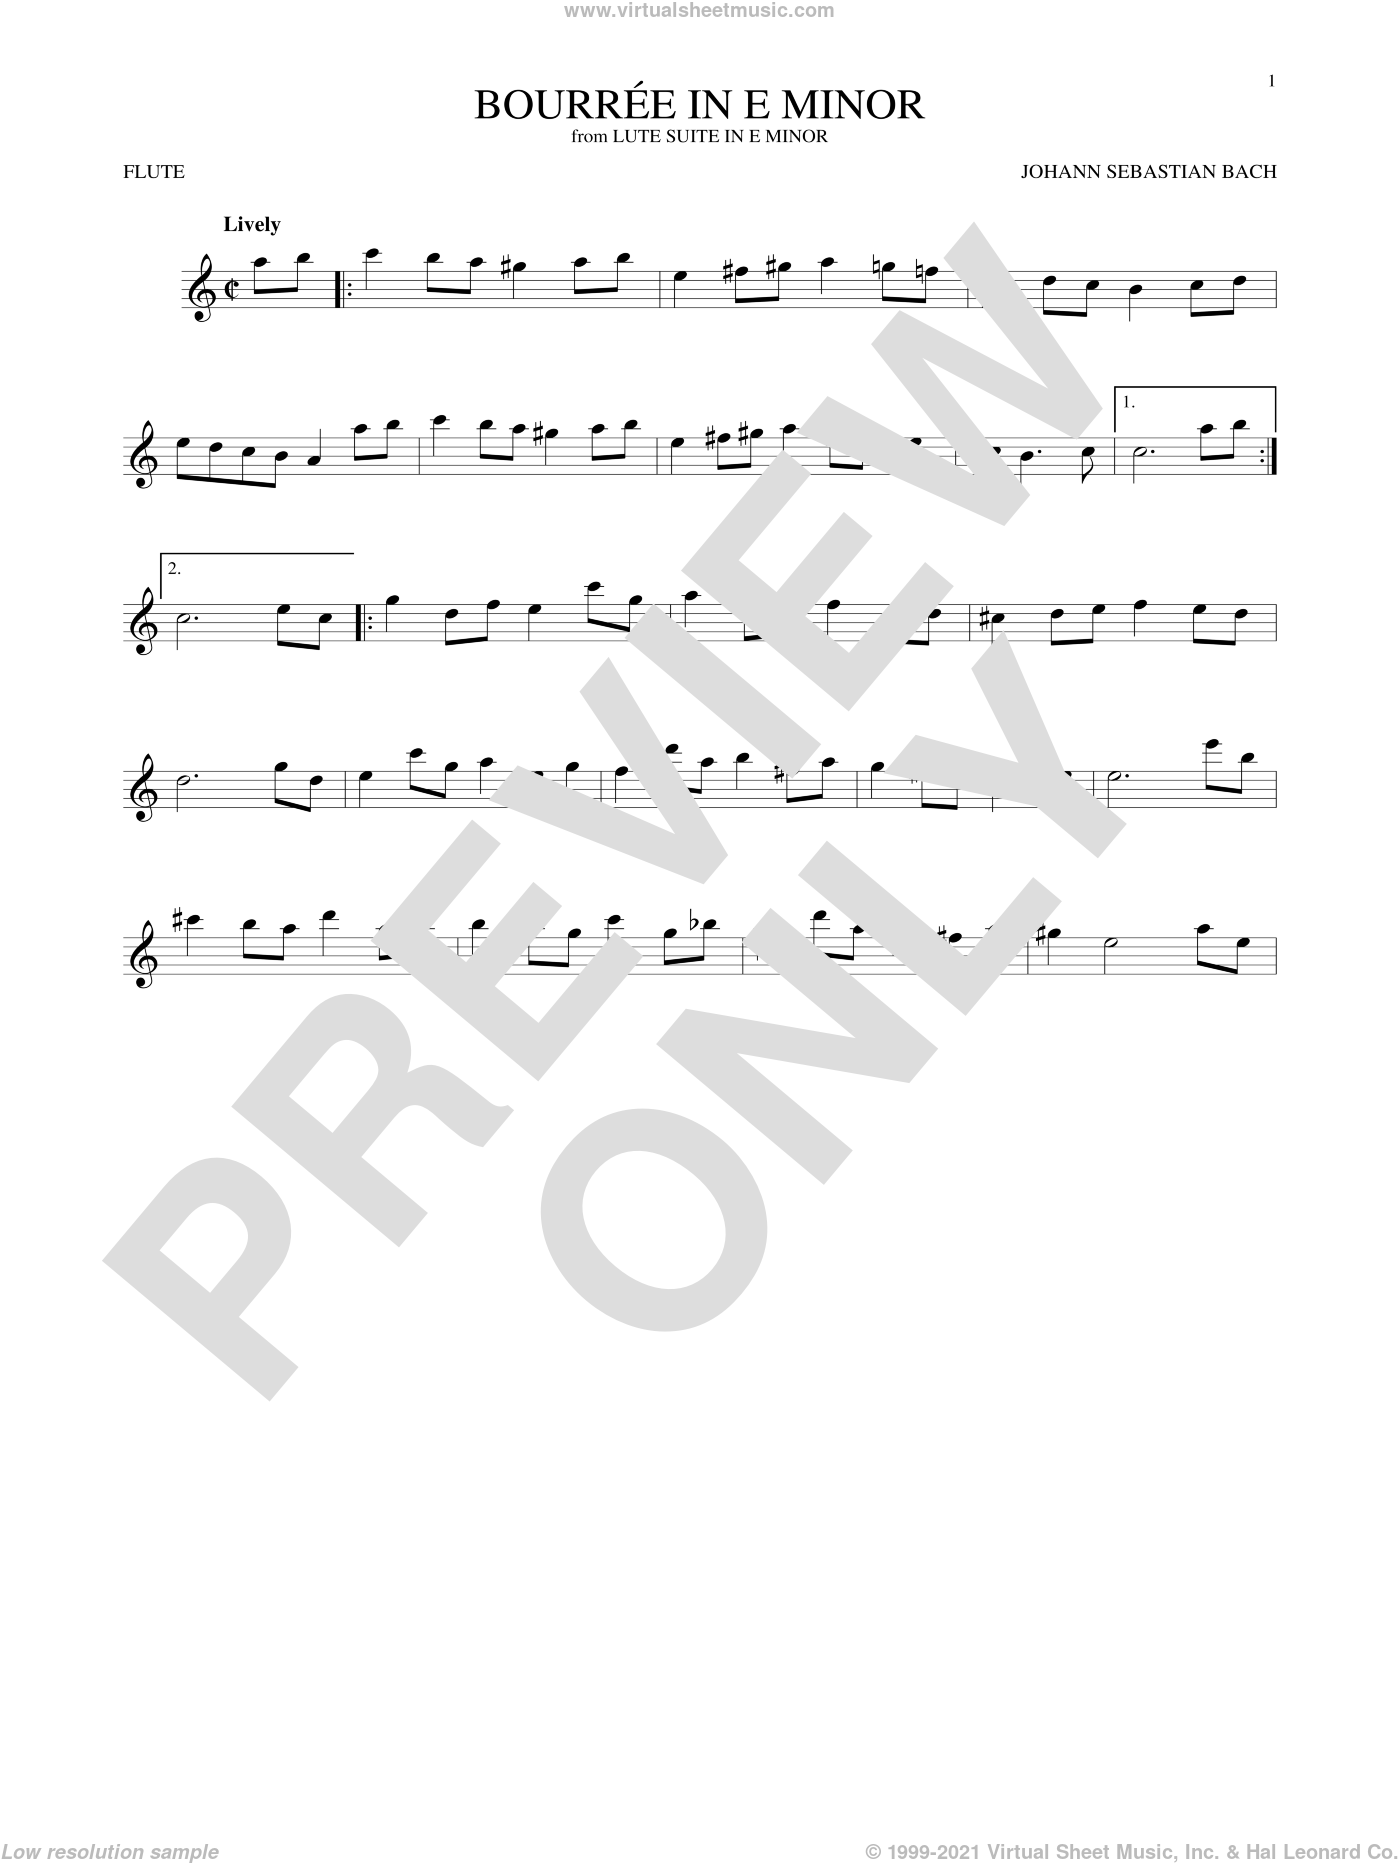 Bourree In E Minor sheet music for flute solo by Johann Sebastian Bach, classical score, intermediate skill level